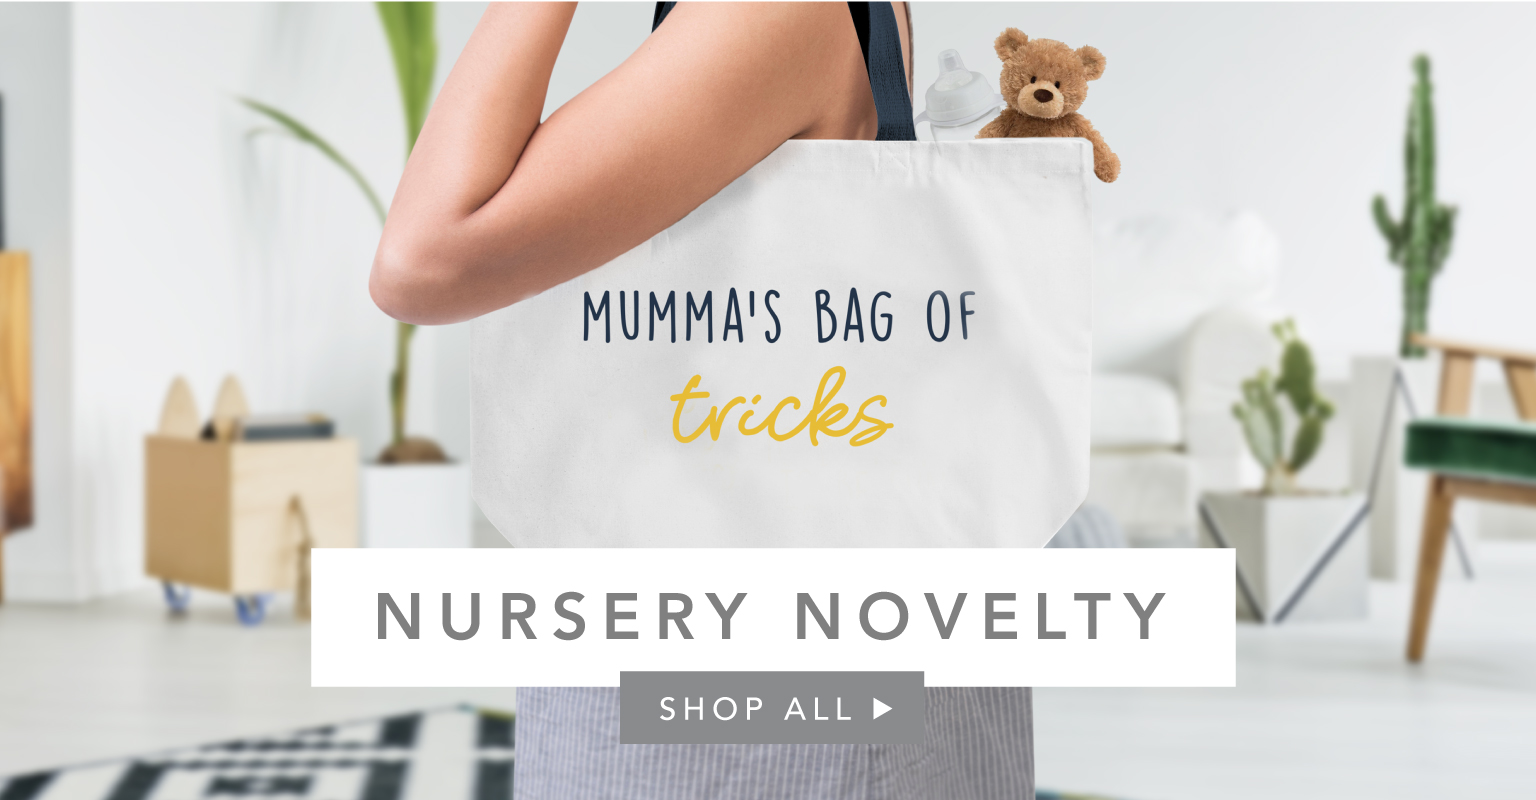 Shop all nursery novelty